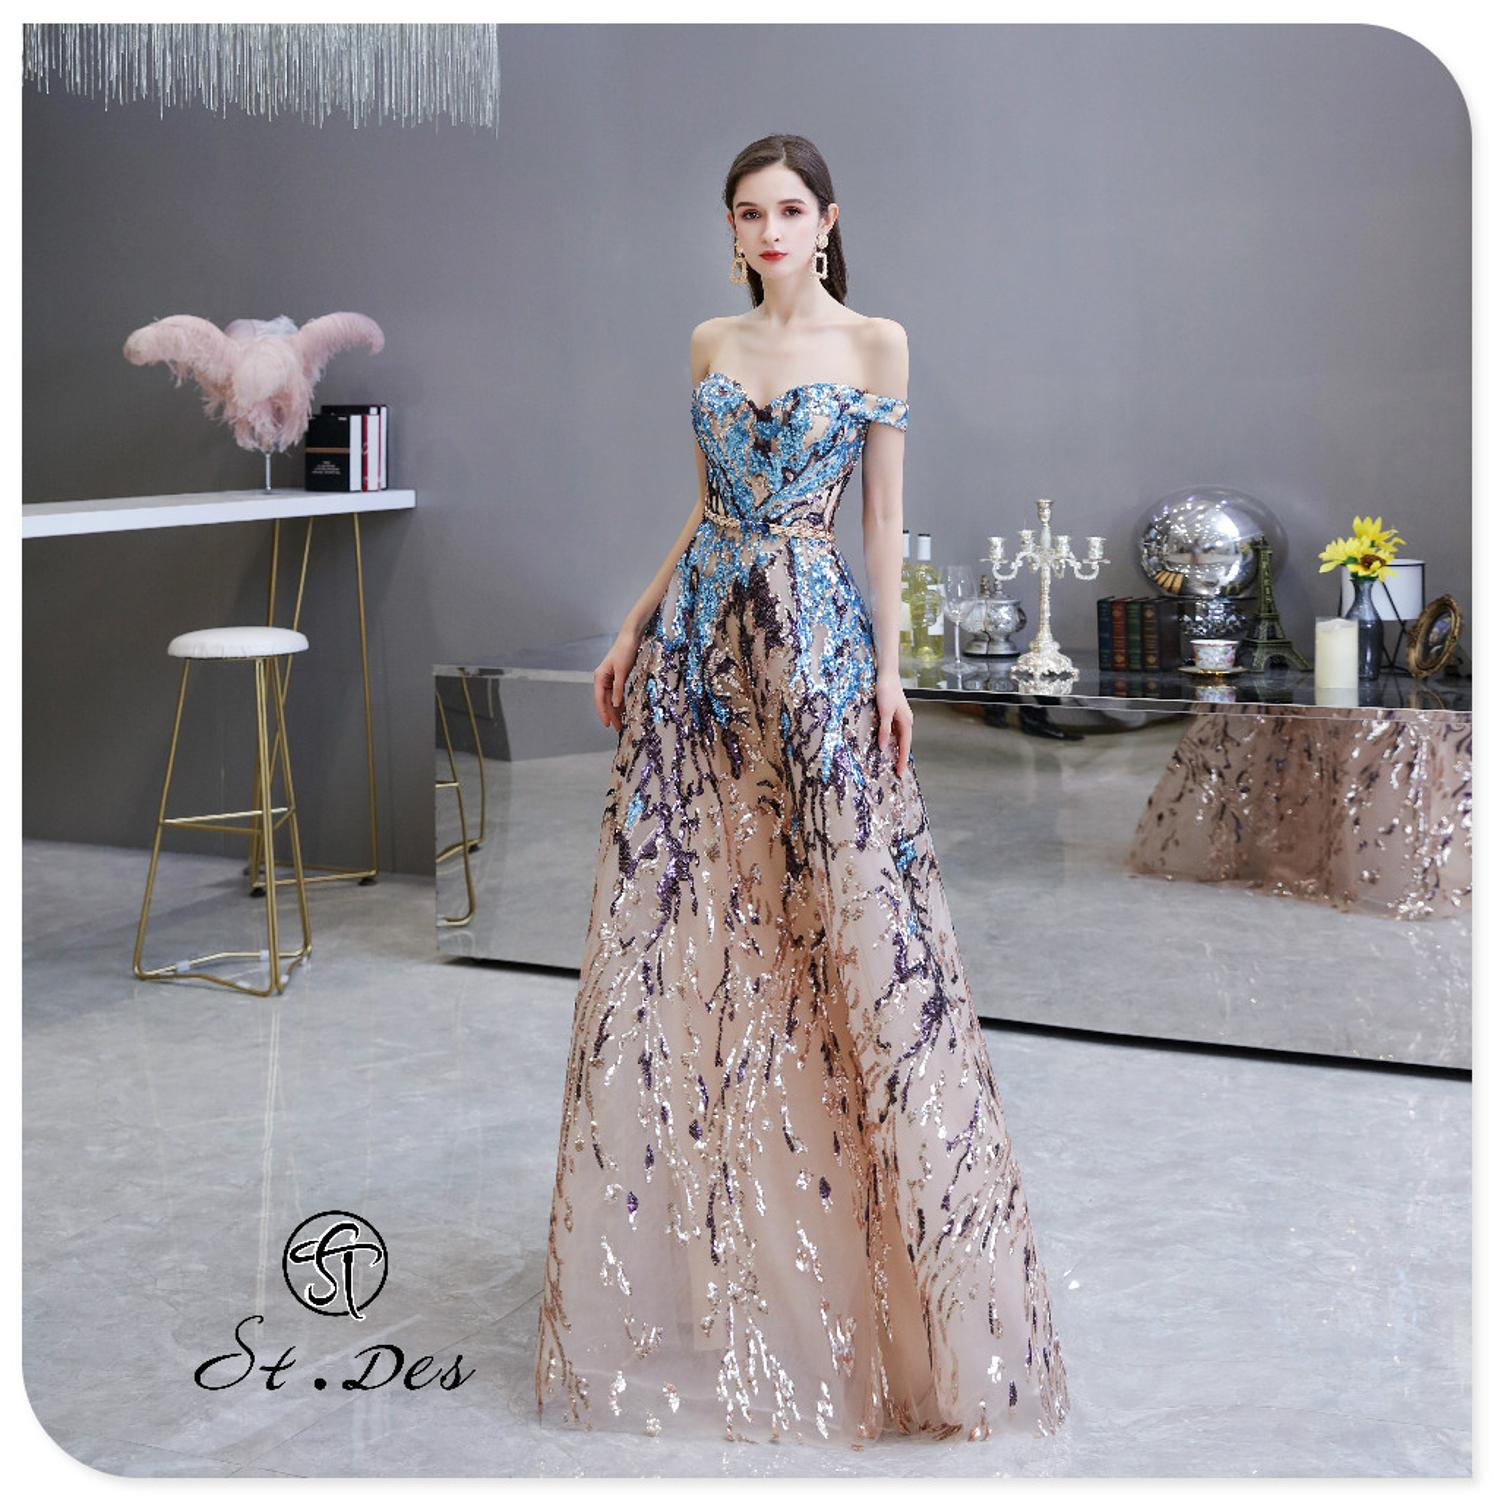 S.T.DES Evening Dress 2020 New Arrival Sweatheart Off-shoulder A-line Lace Sleeveless  Floor Length Party Dress Dinner Gowns